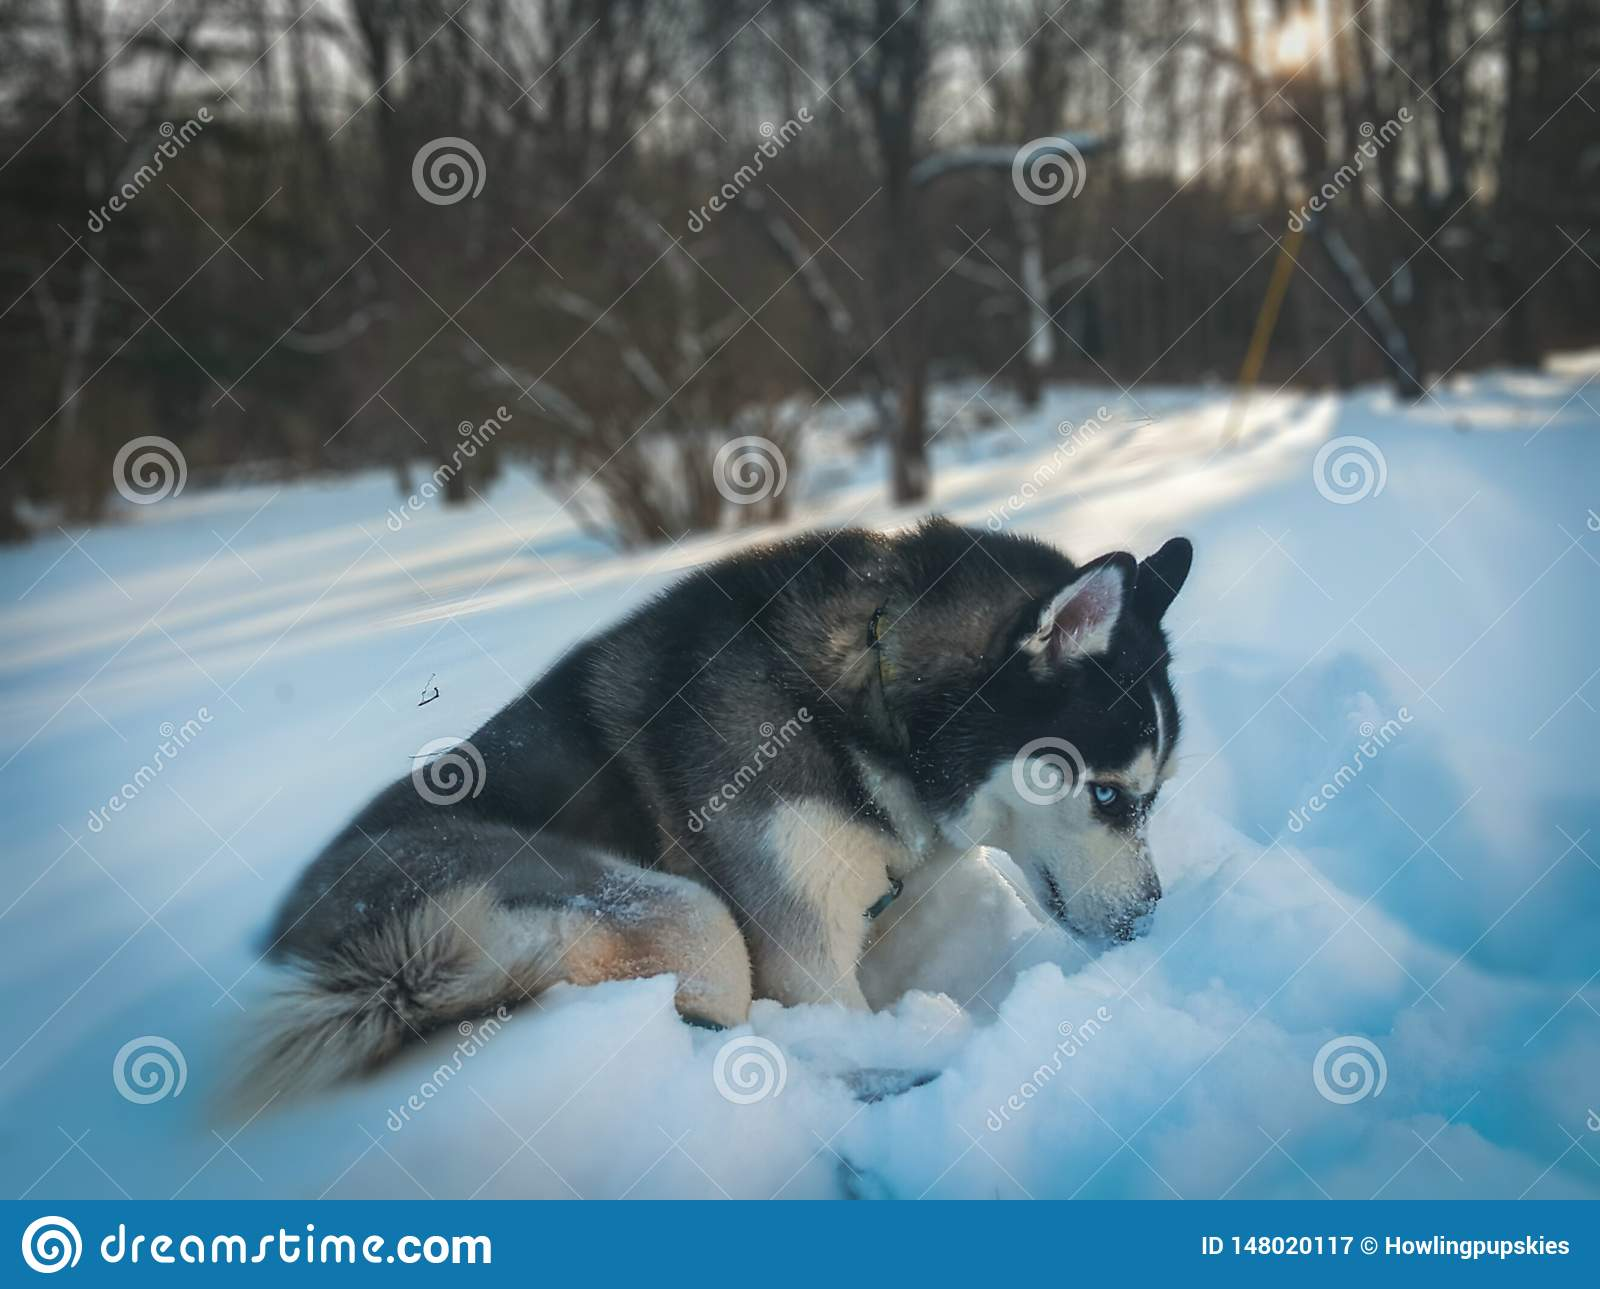 Husky With Blue Eyes In Snow Stock Image Image Of Aesthetic Sunset 148020117